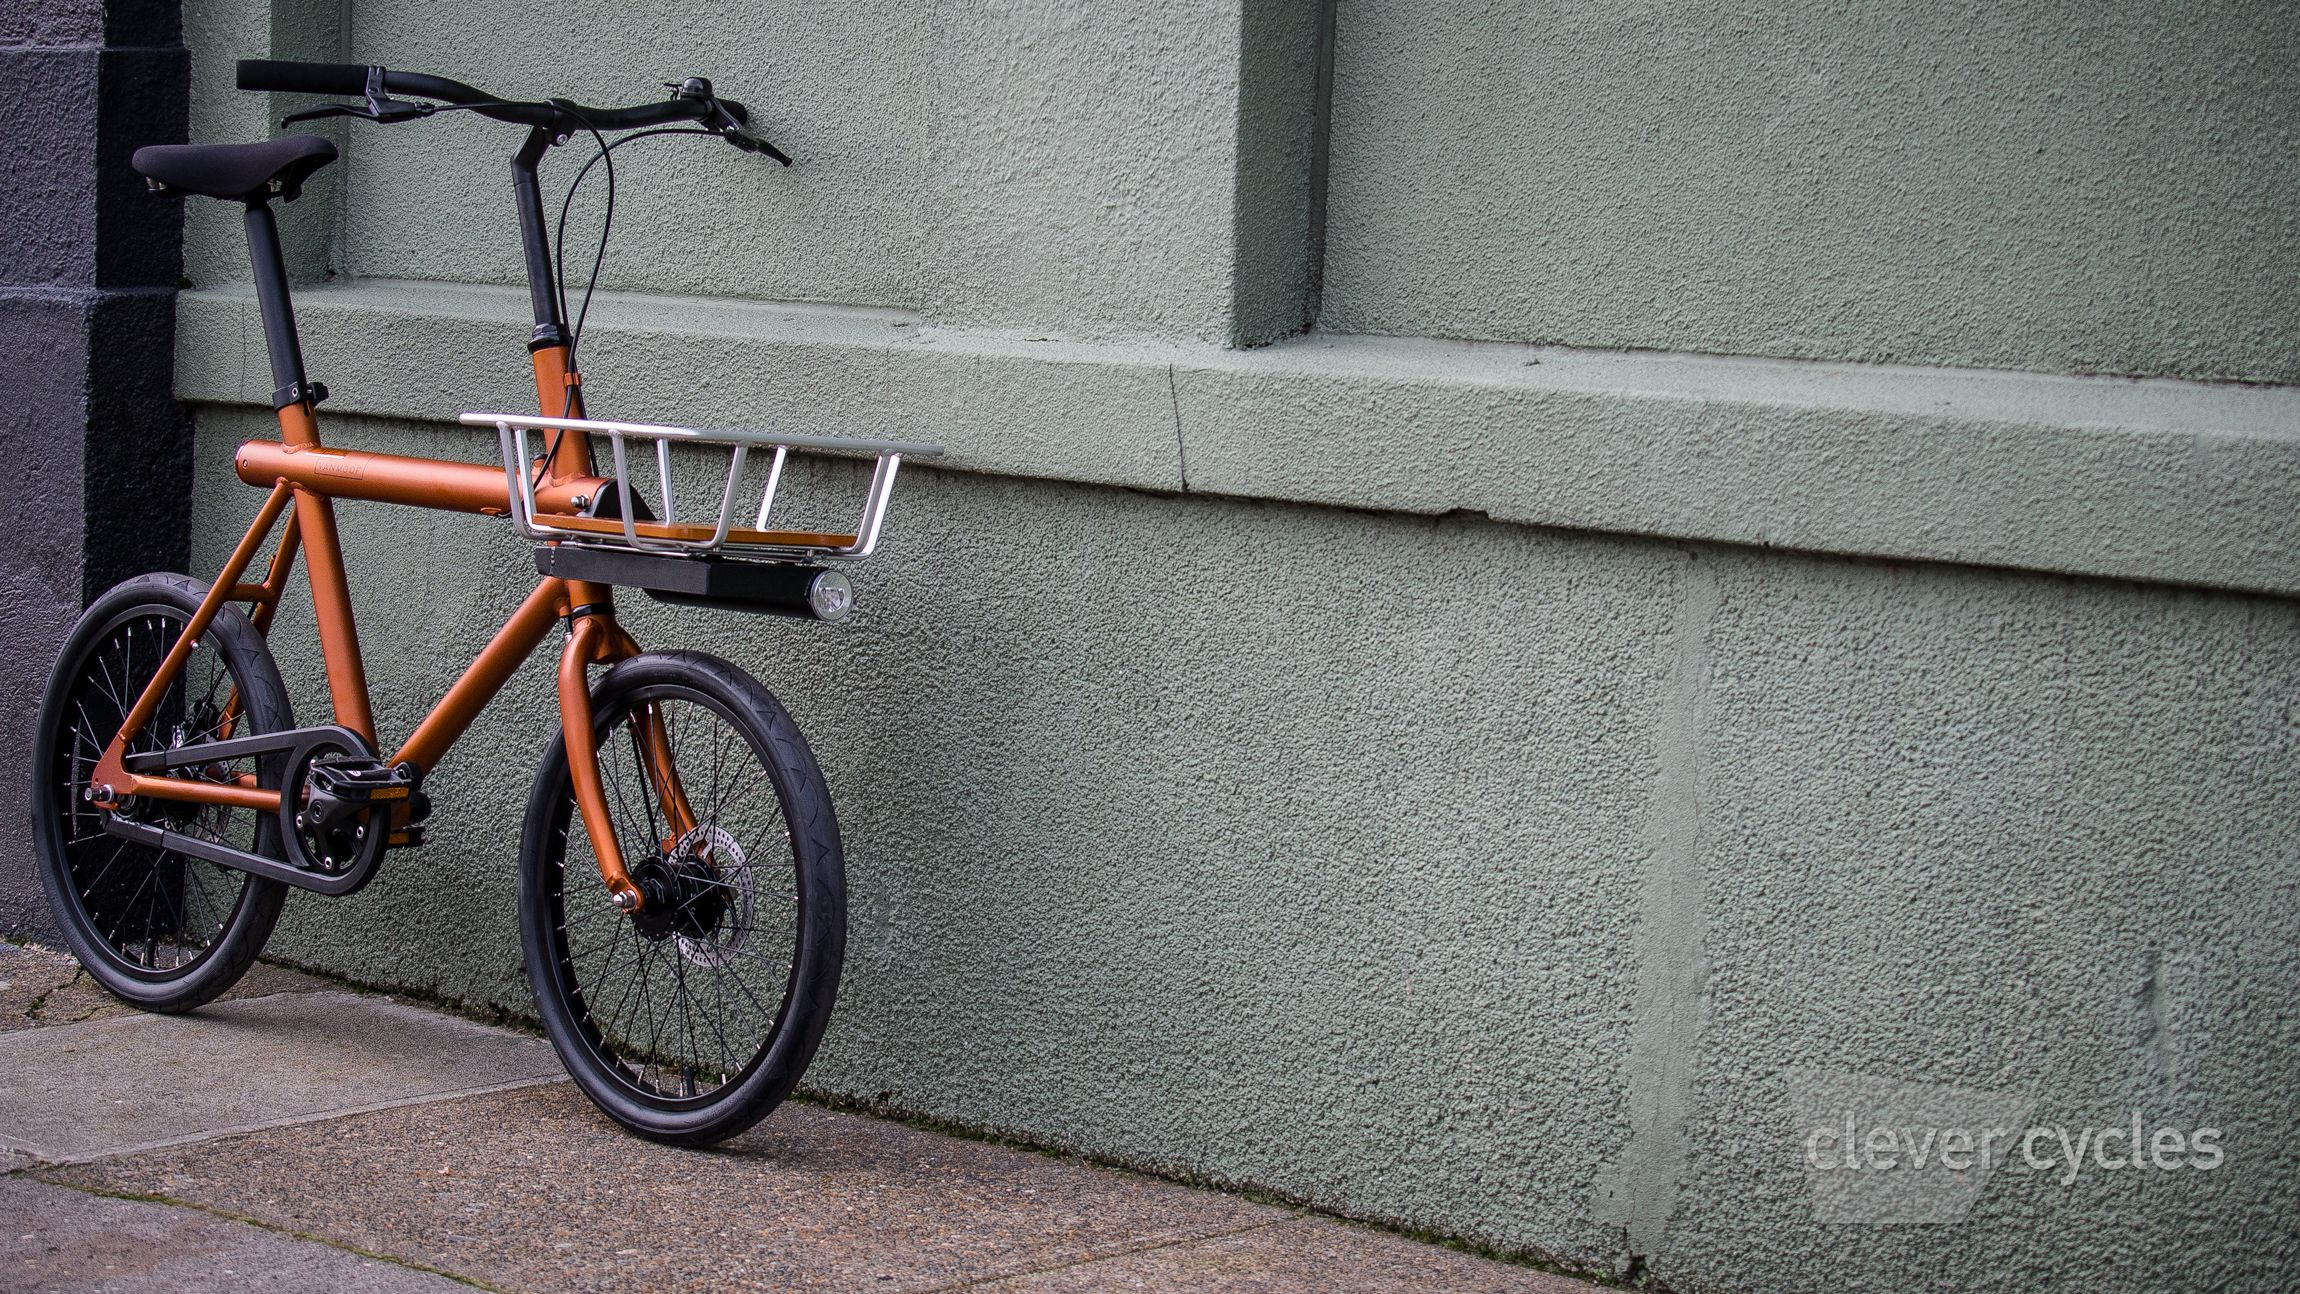 Vanmoof T series city bike | City bikes | Commuter bike, Bike